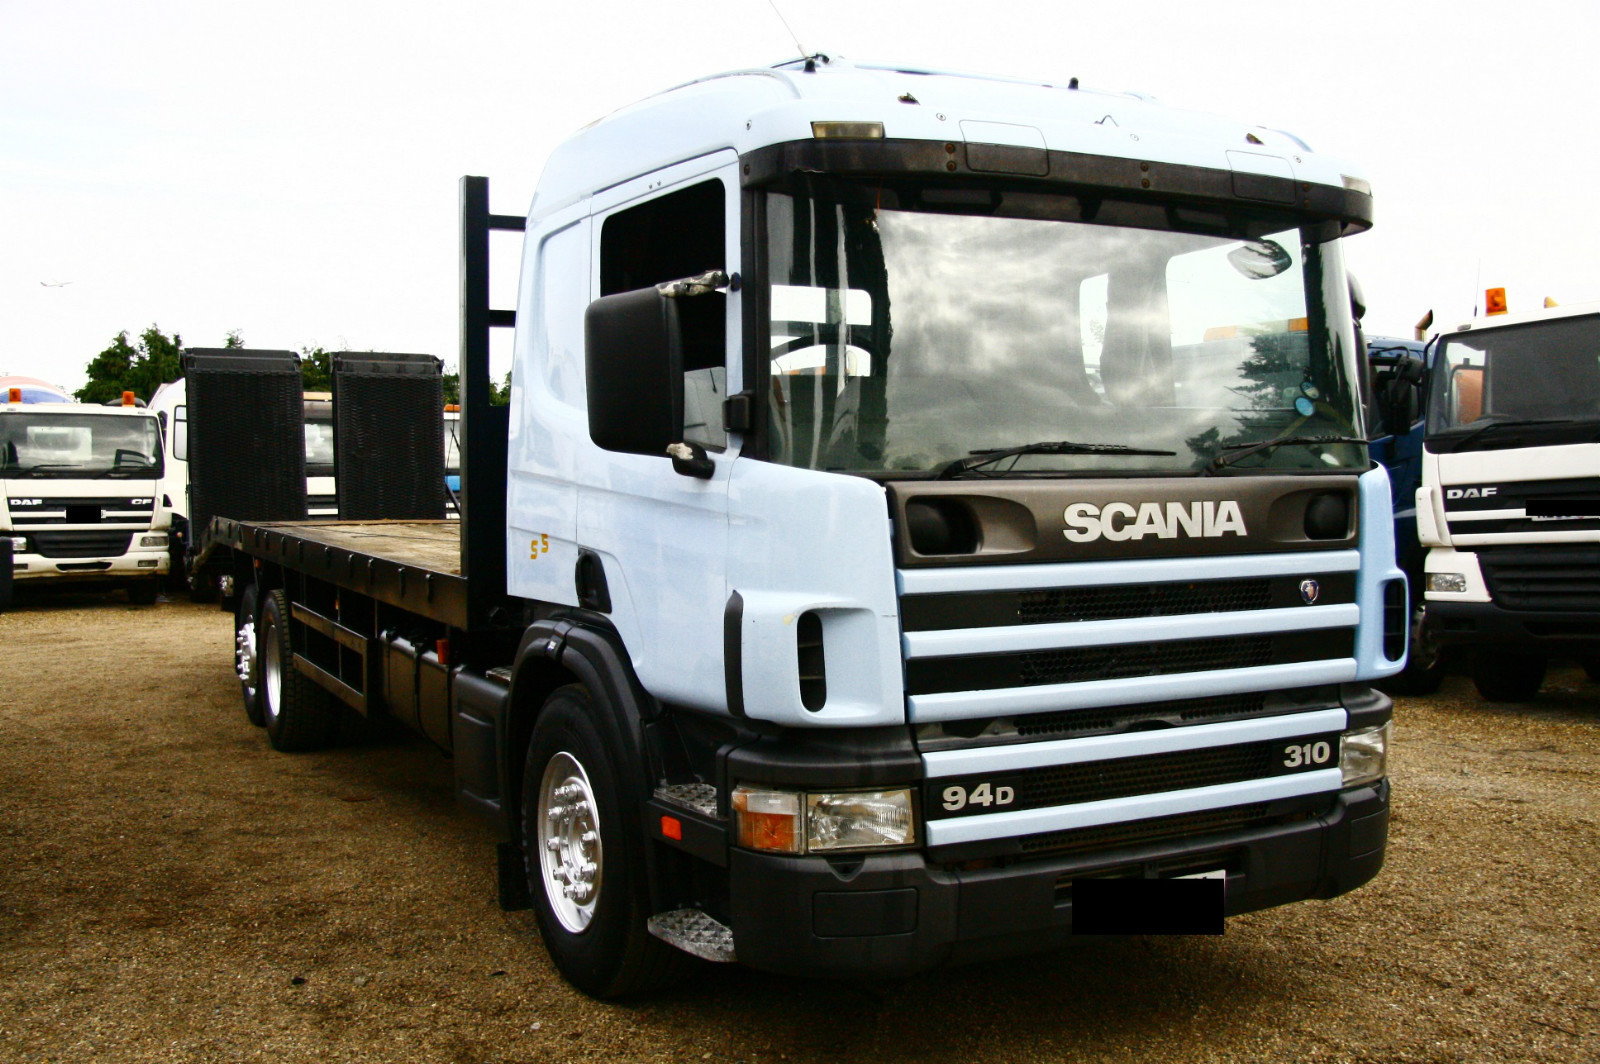 Used Scania Trucks for Sale UK | Second Hand Commercial Lorry Sales